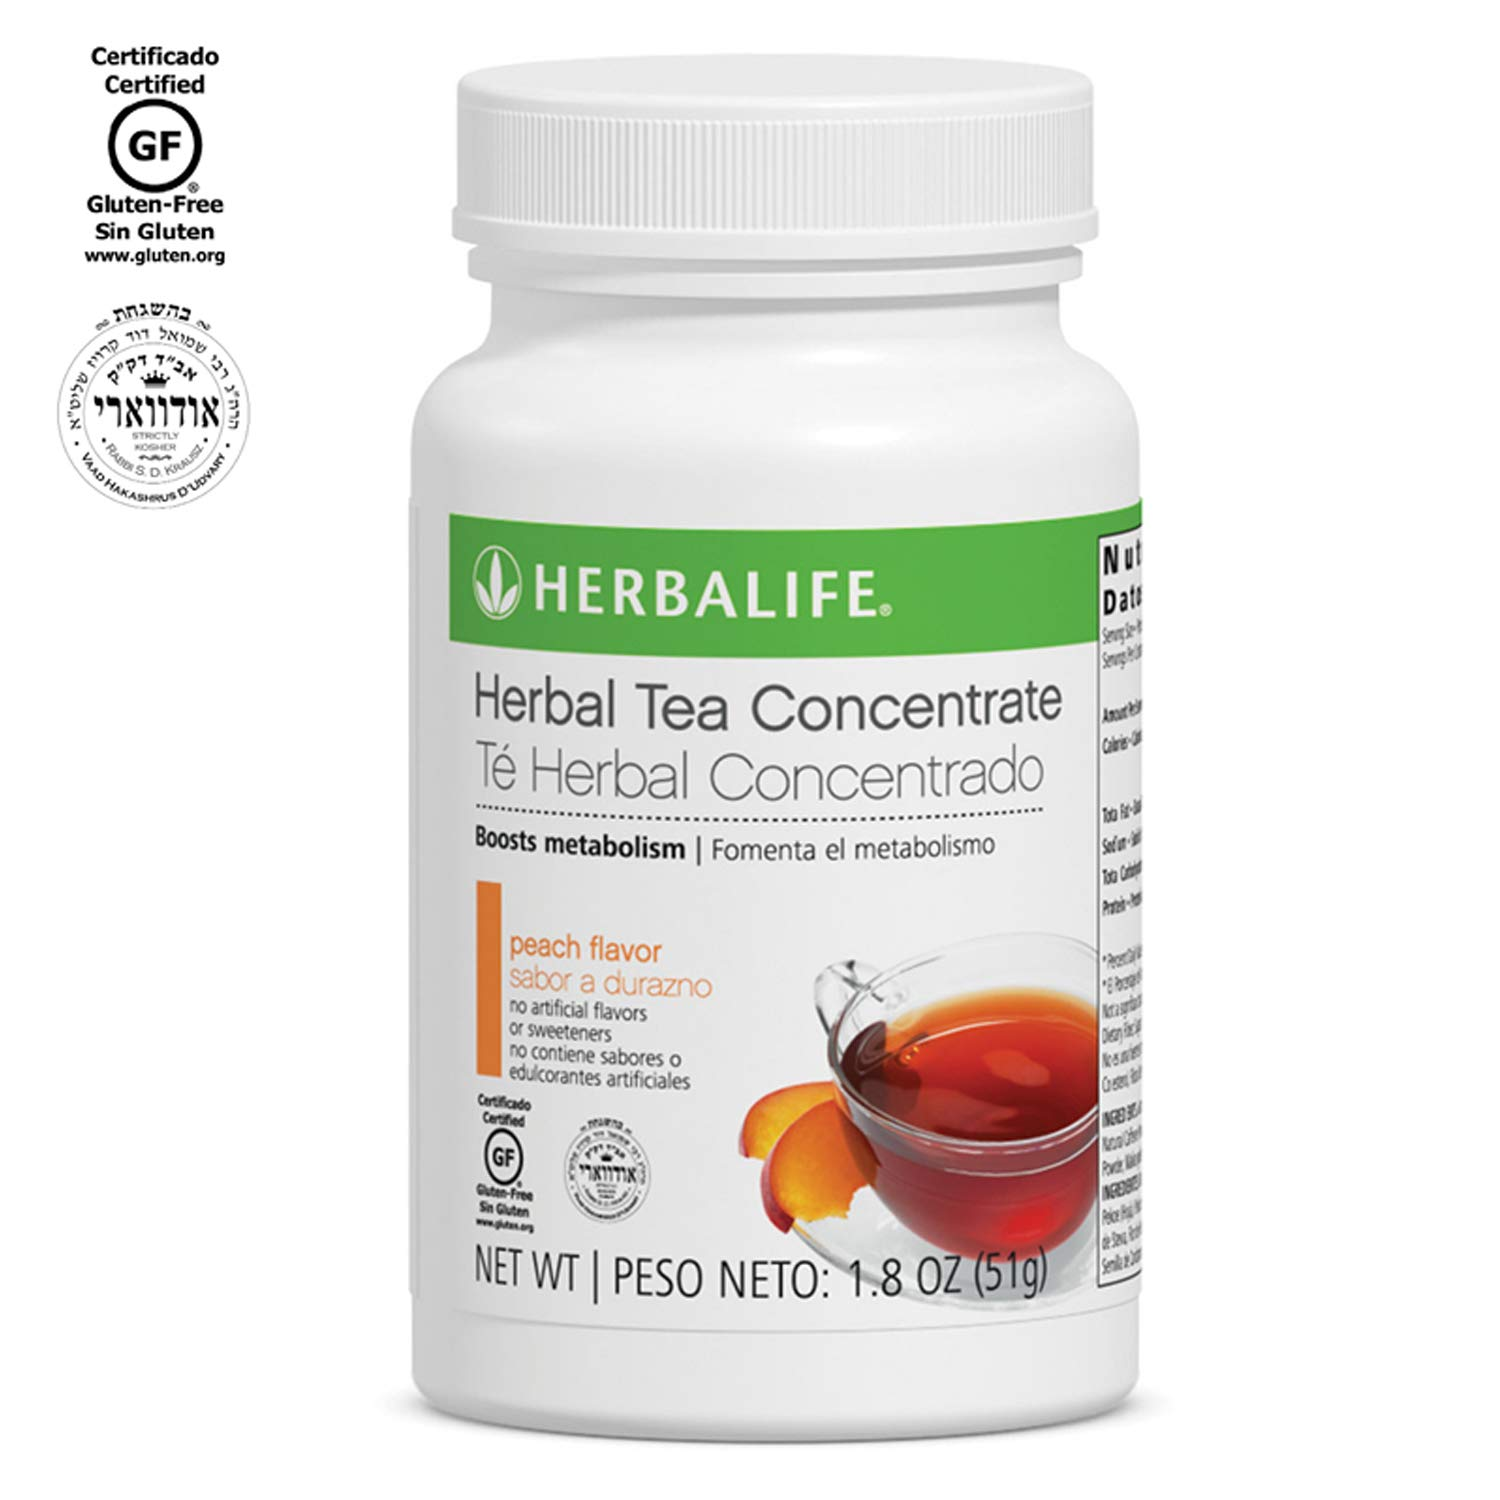 Herbalife, Herbal Concentrate Tea, Peach, 3.53 oz (100 g)